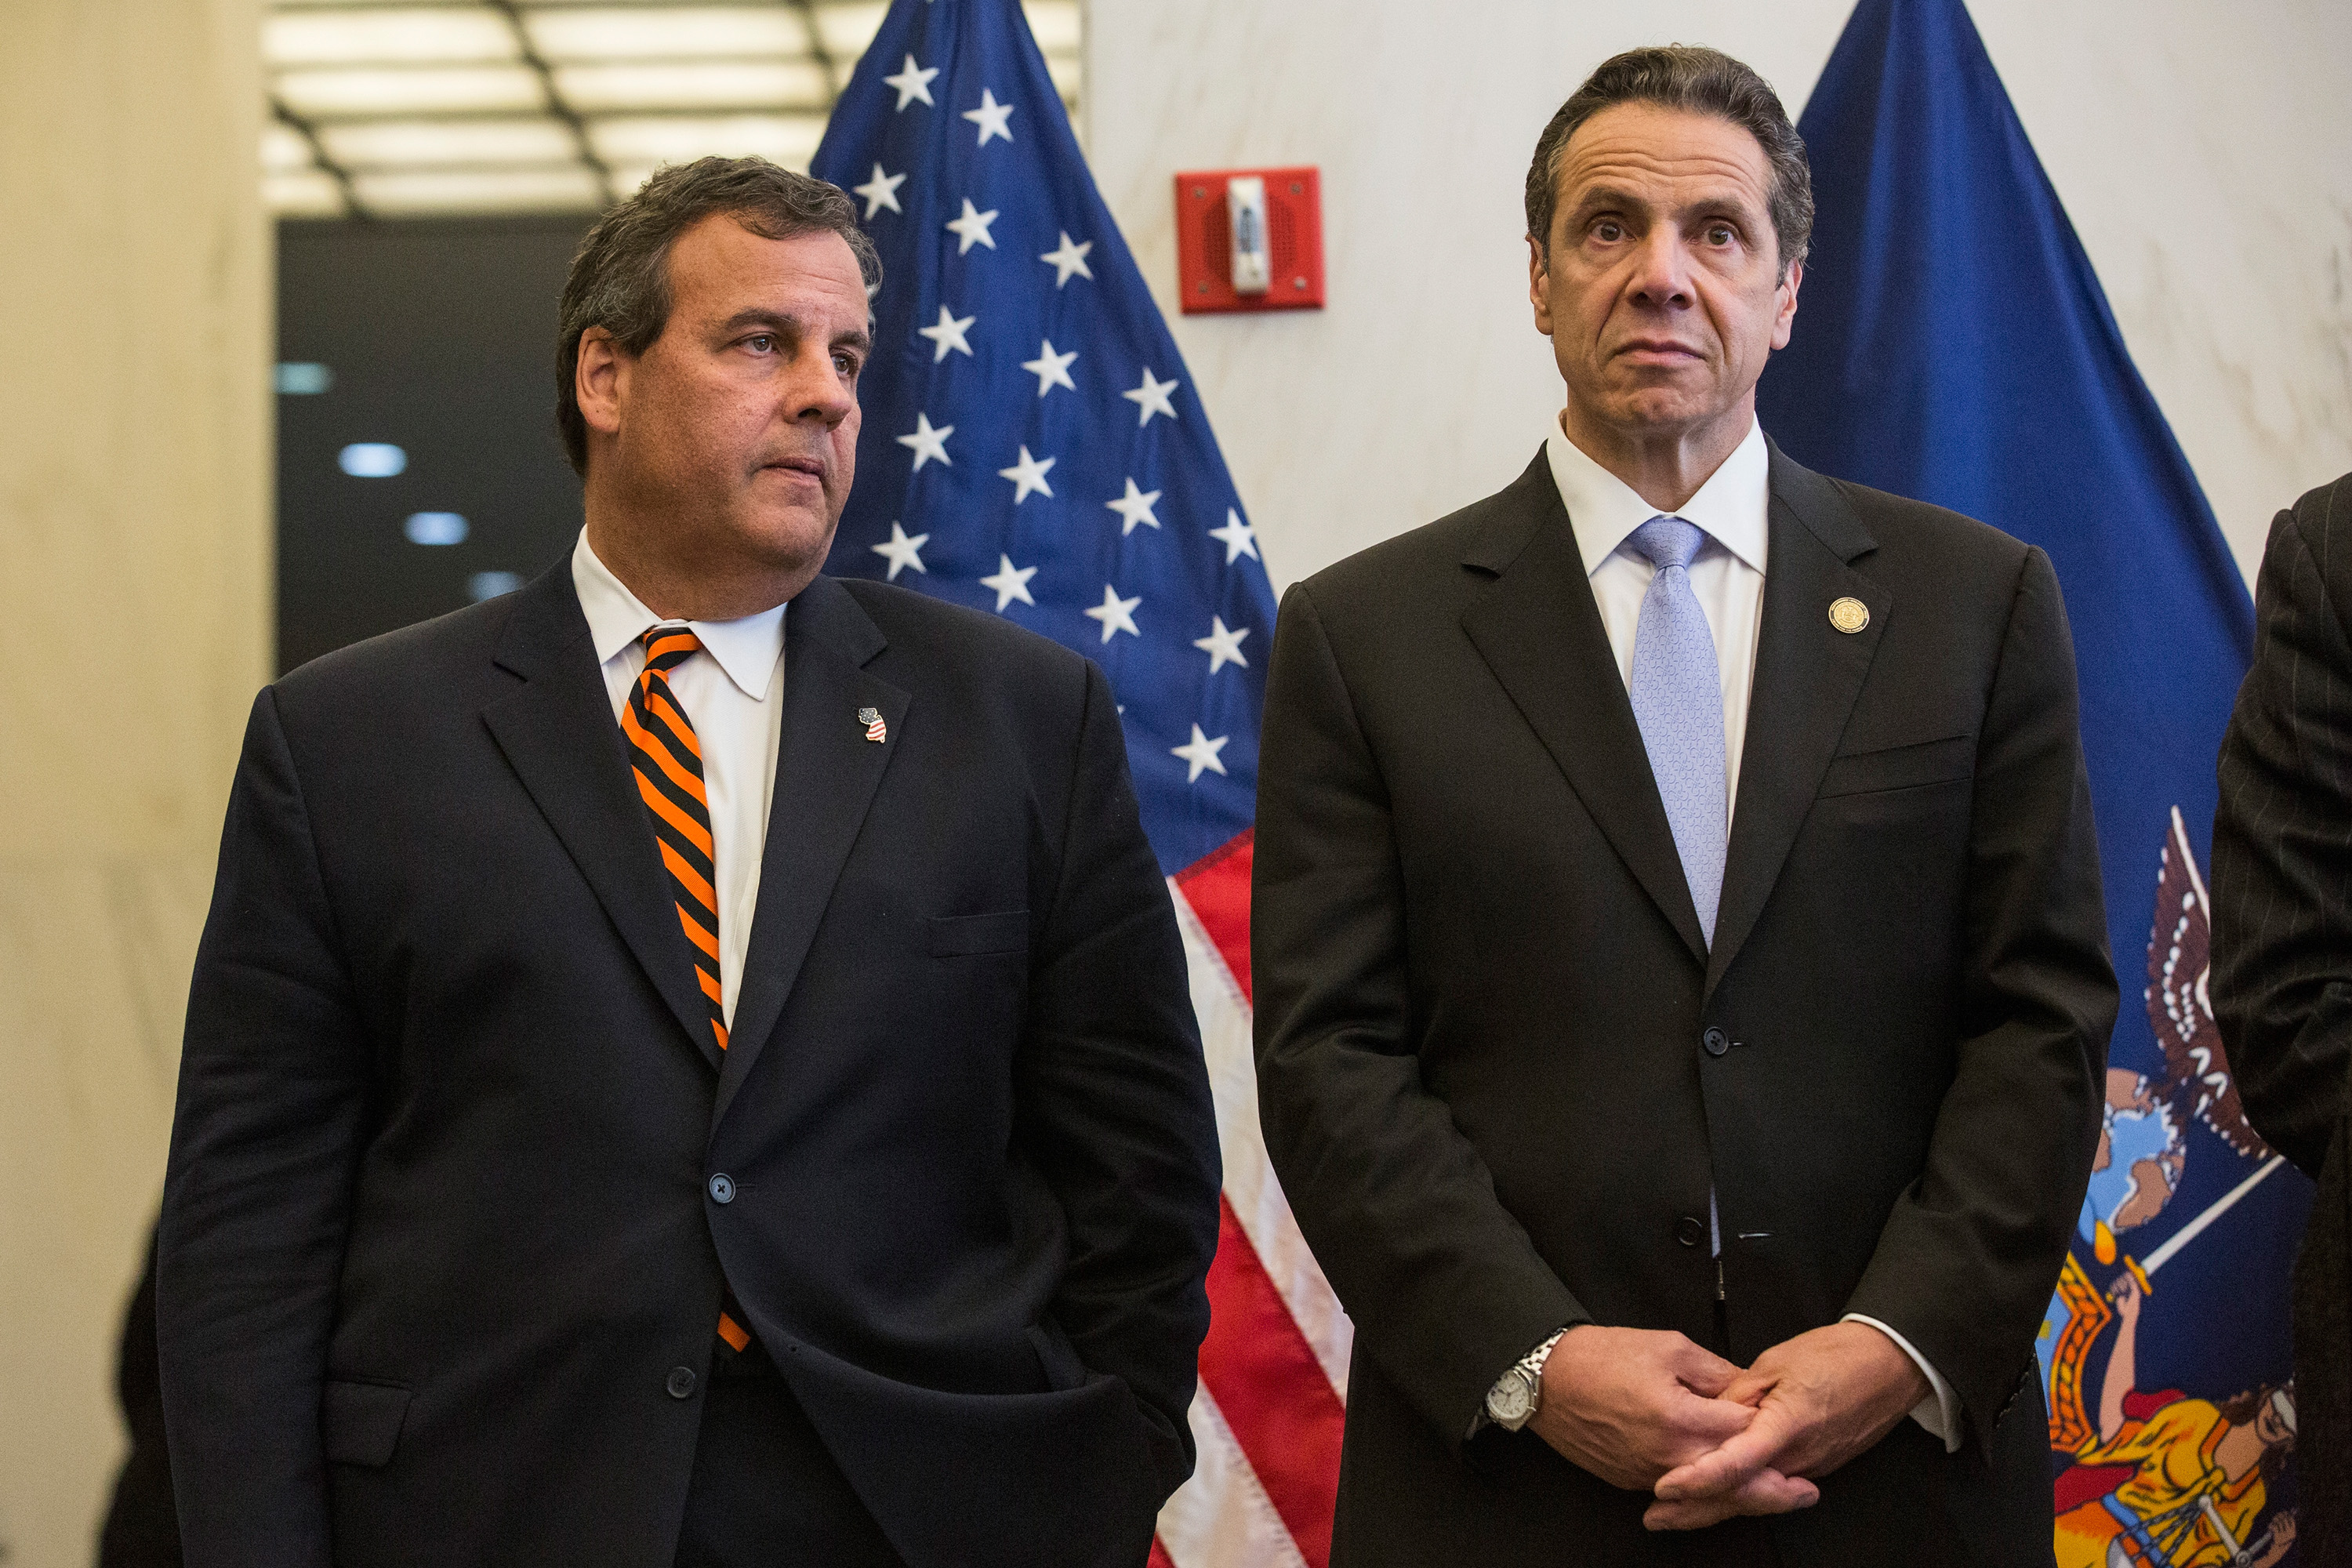 Gov. Chris Christie with Gov. Andrew Cuomo. (Photo: Andrew Burt/Getty Images)